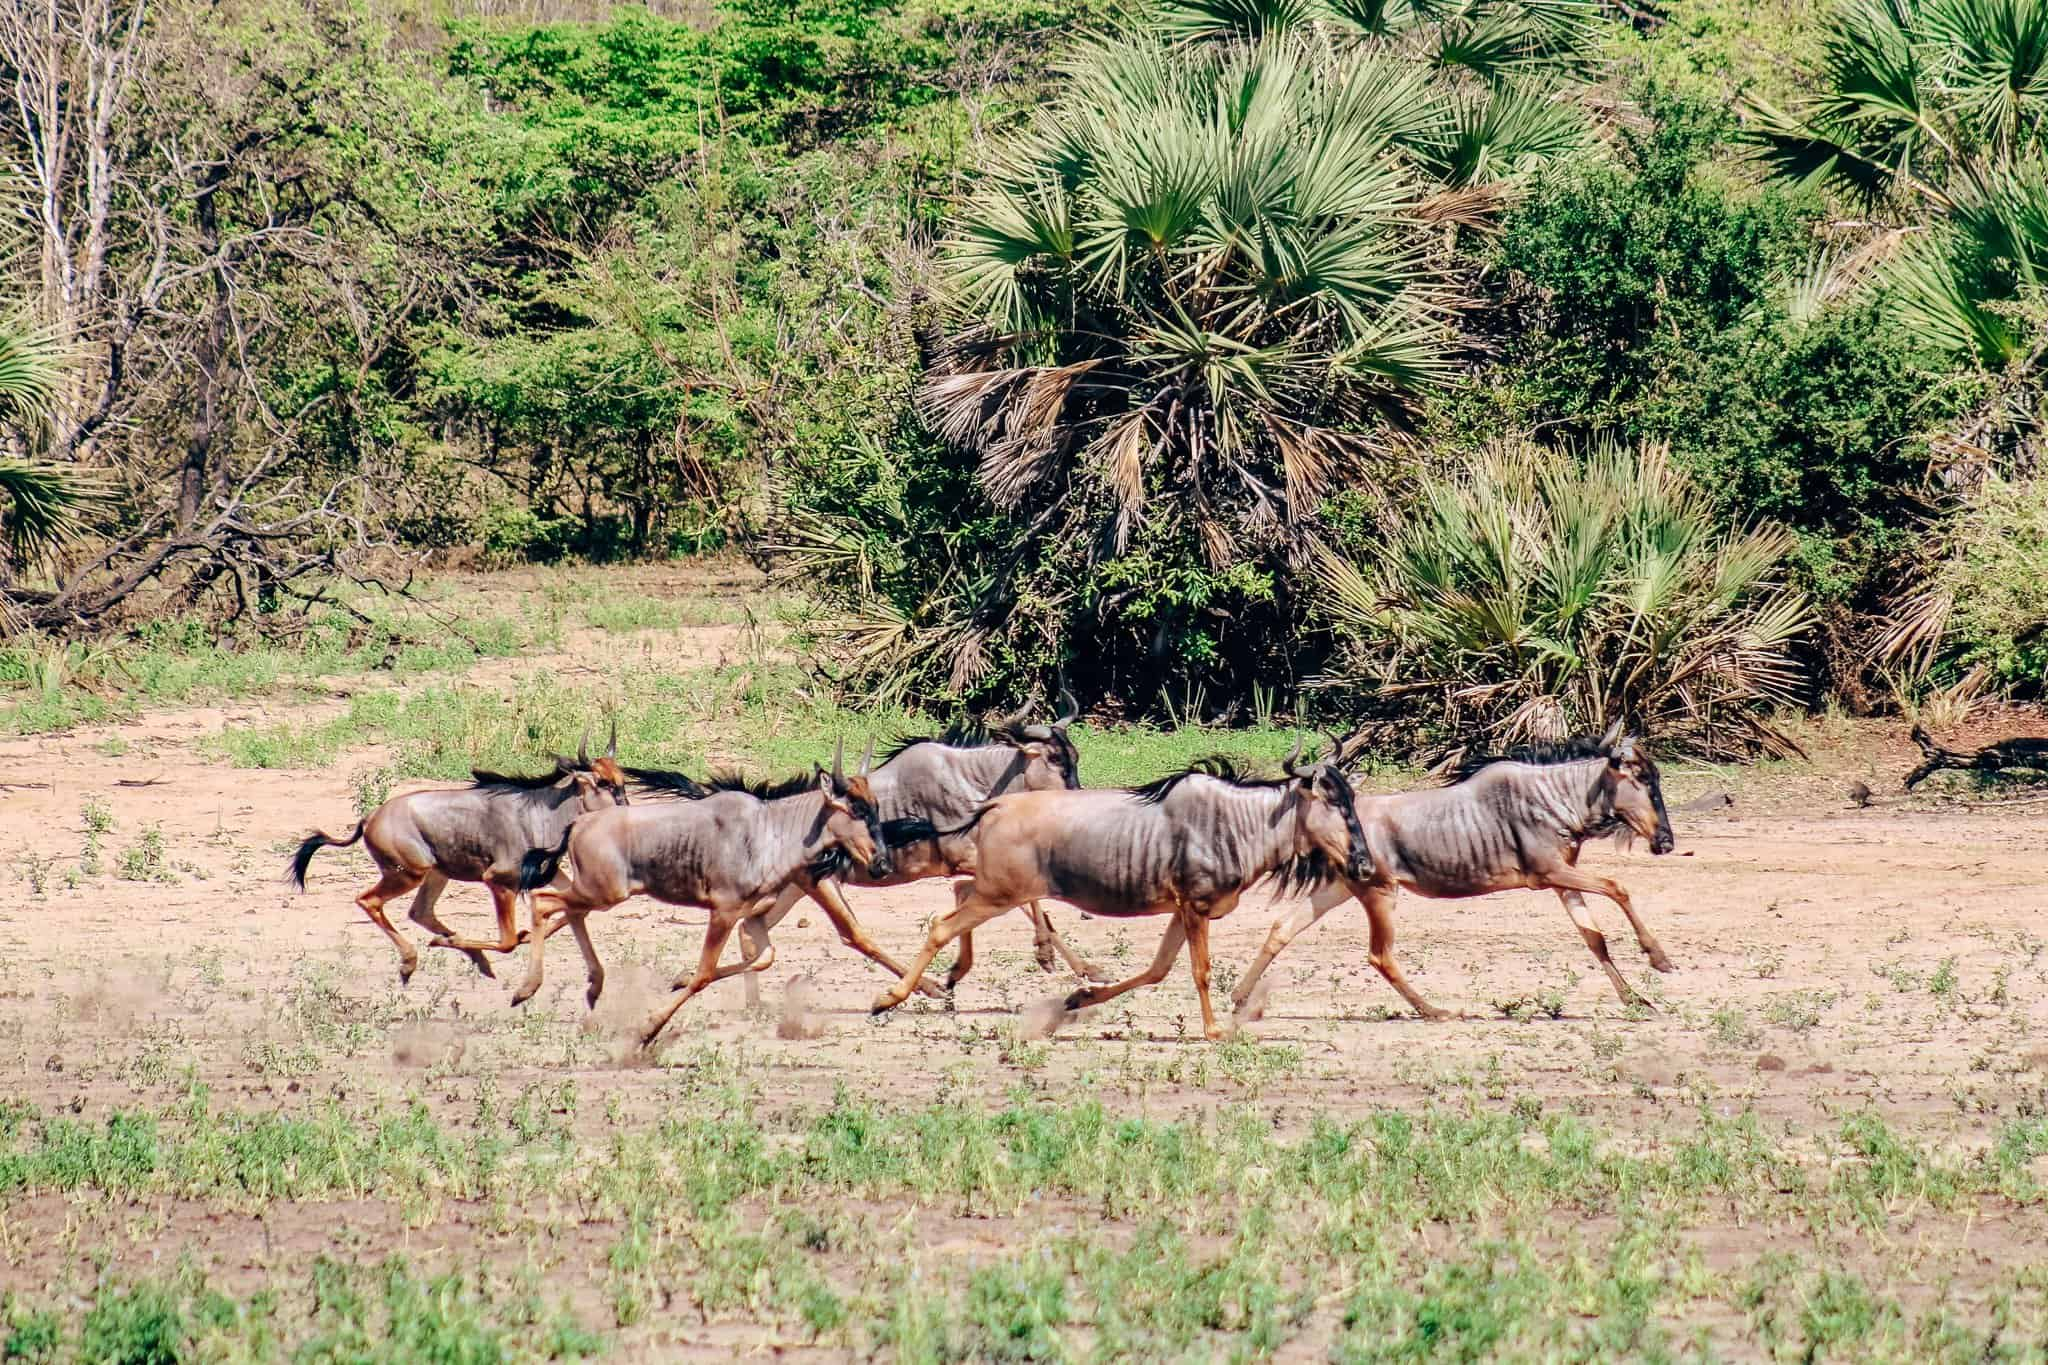 Herd of Wildebeest on African Safari Drive in the Selous Game Reserve